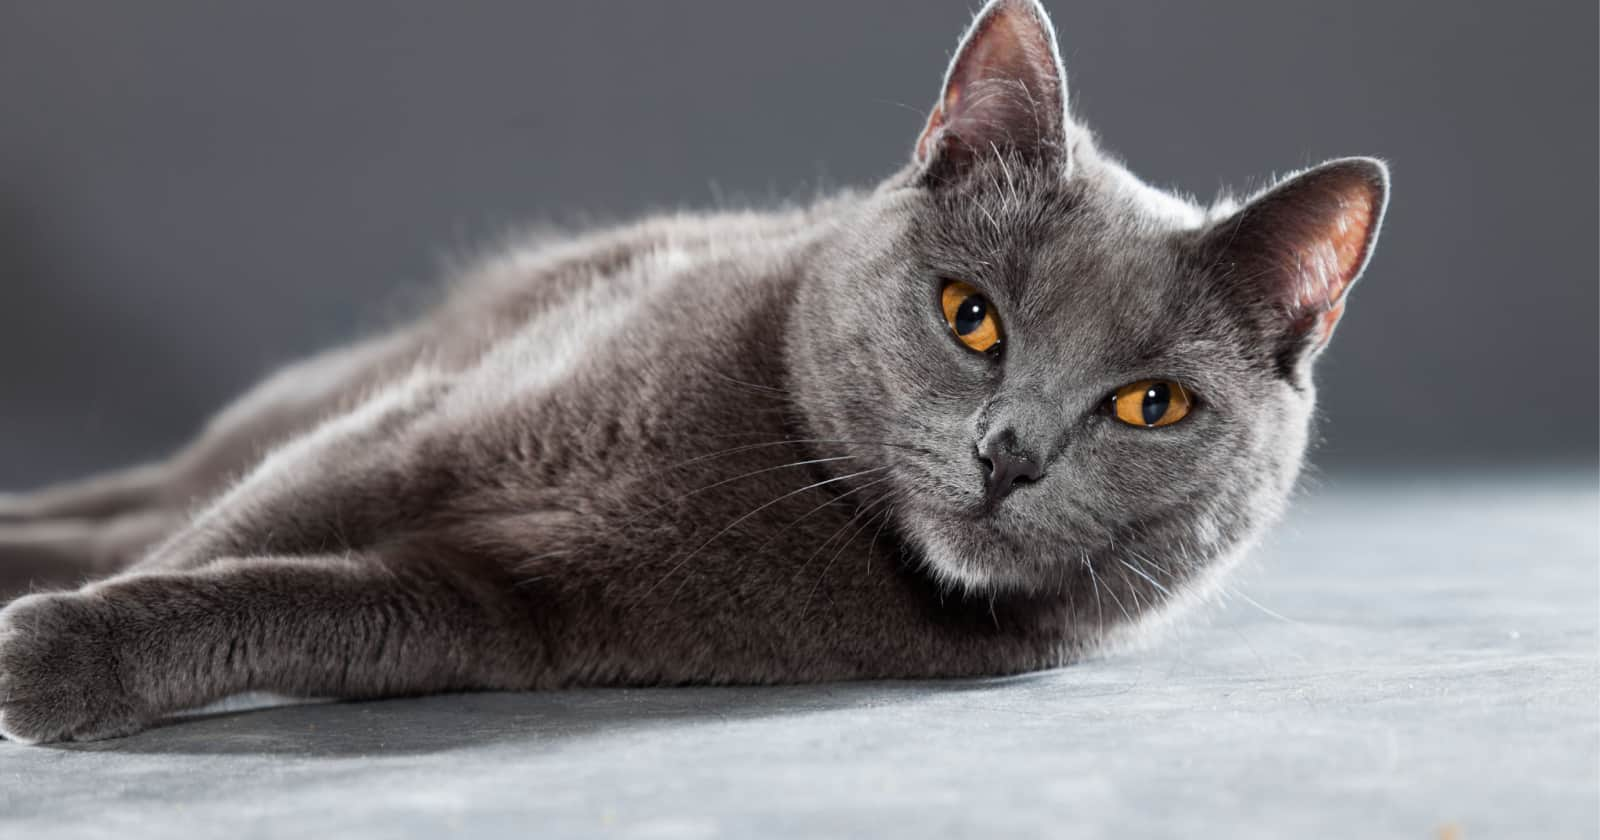 The Chartreux is one of the best mouser cat breeds